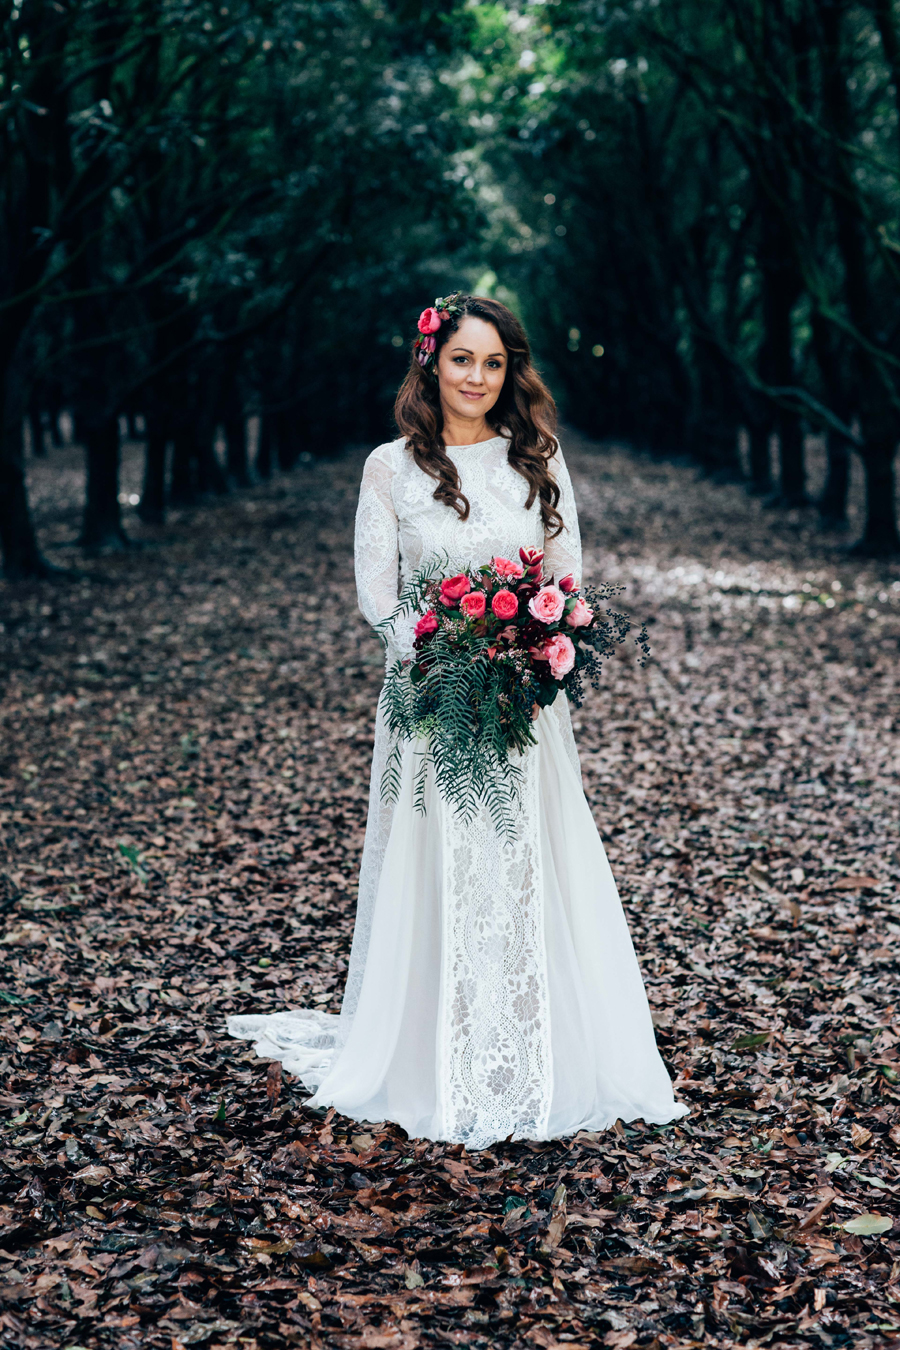 Photo // Figtree Wedding Photography